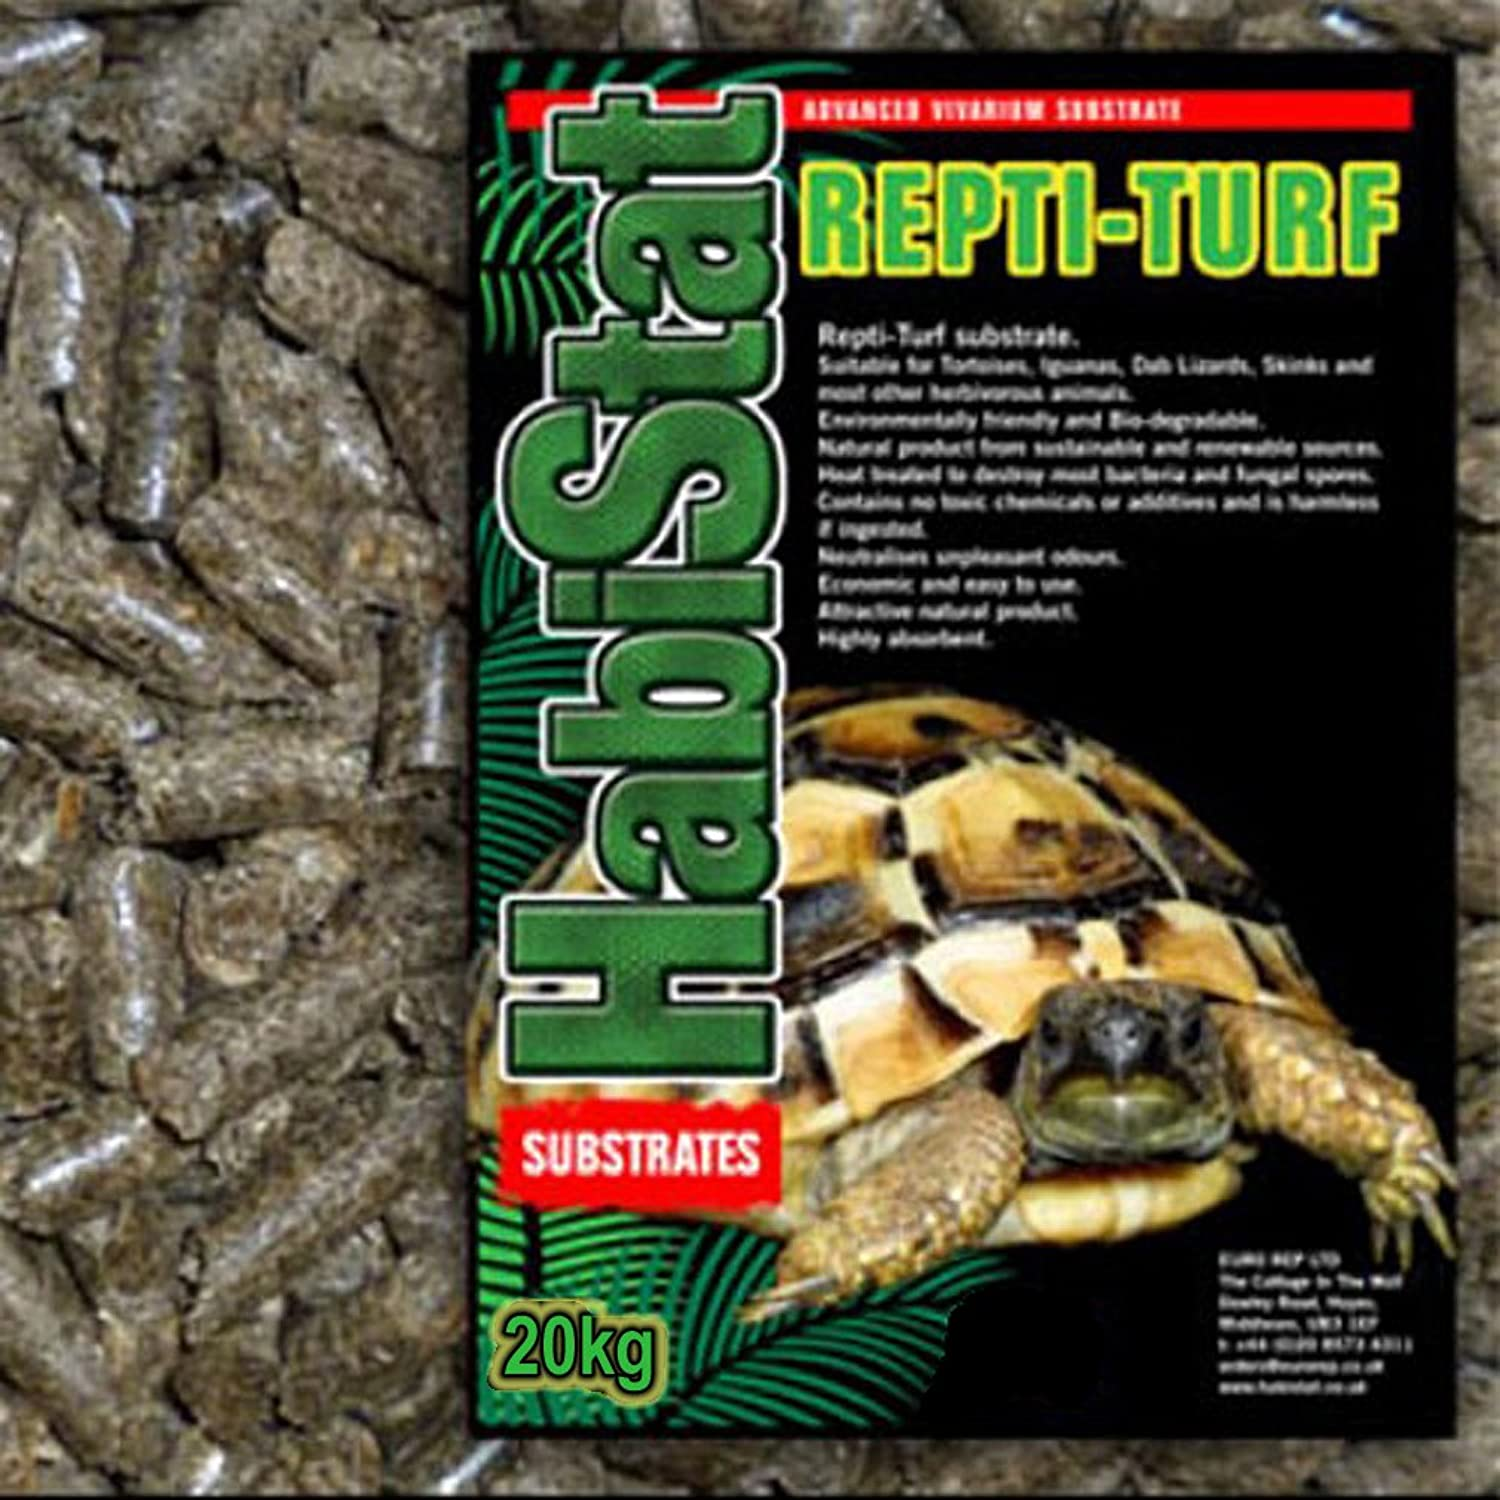 Monster Pet Supplies Euro Rep Rain Forest Reptile Substrate Coarse 10Ltr